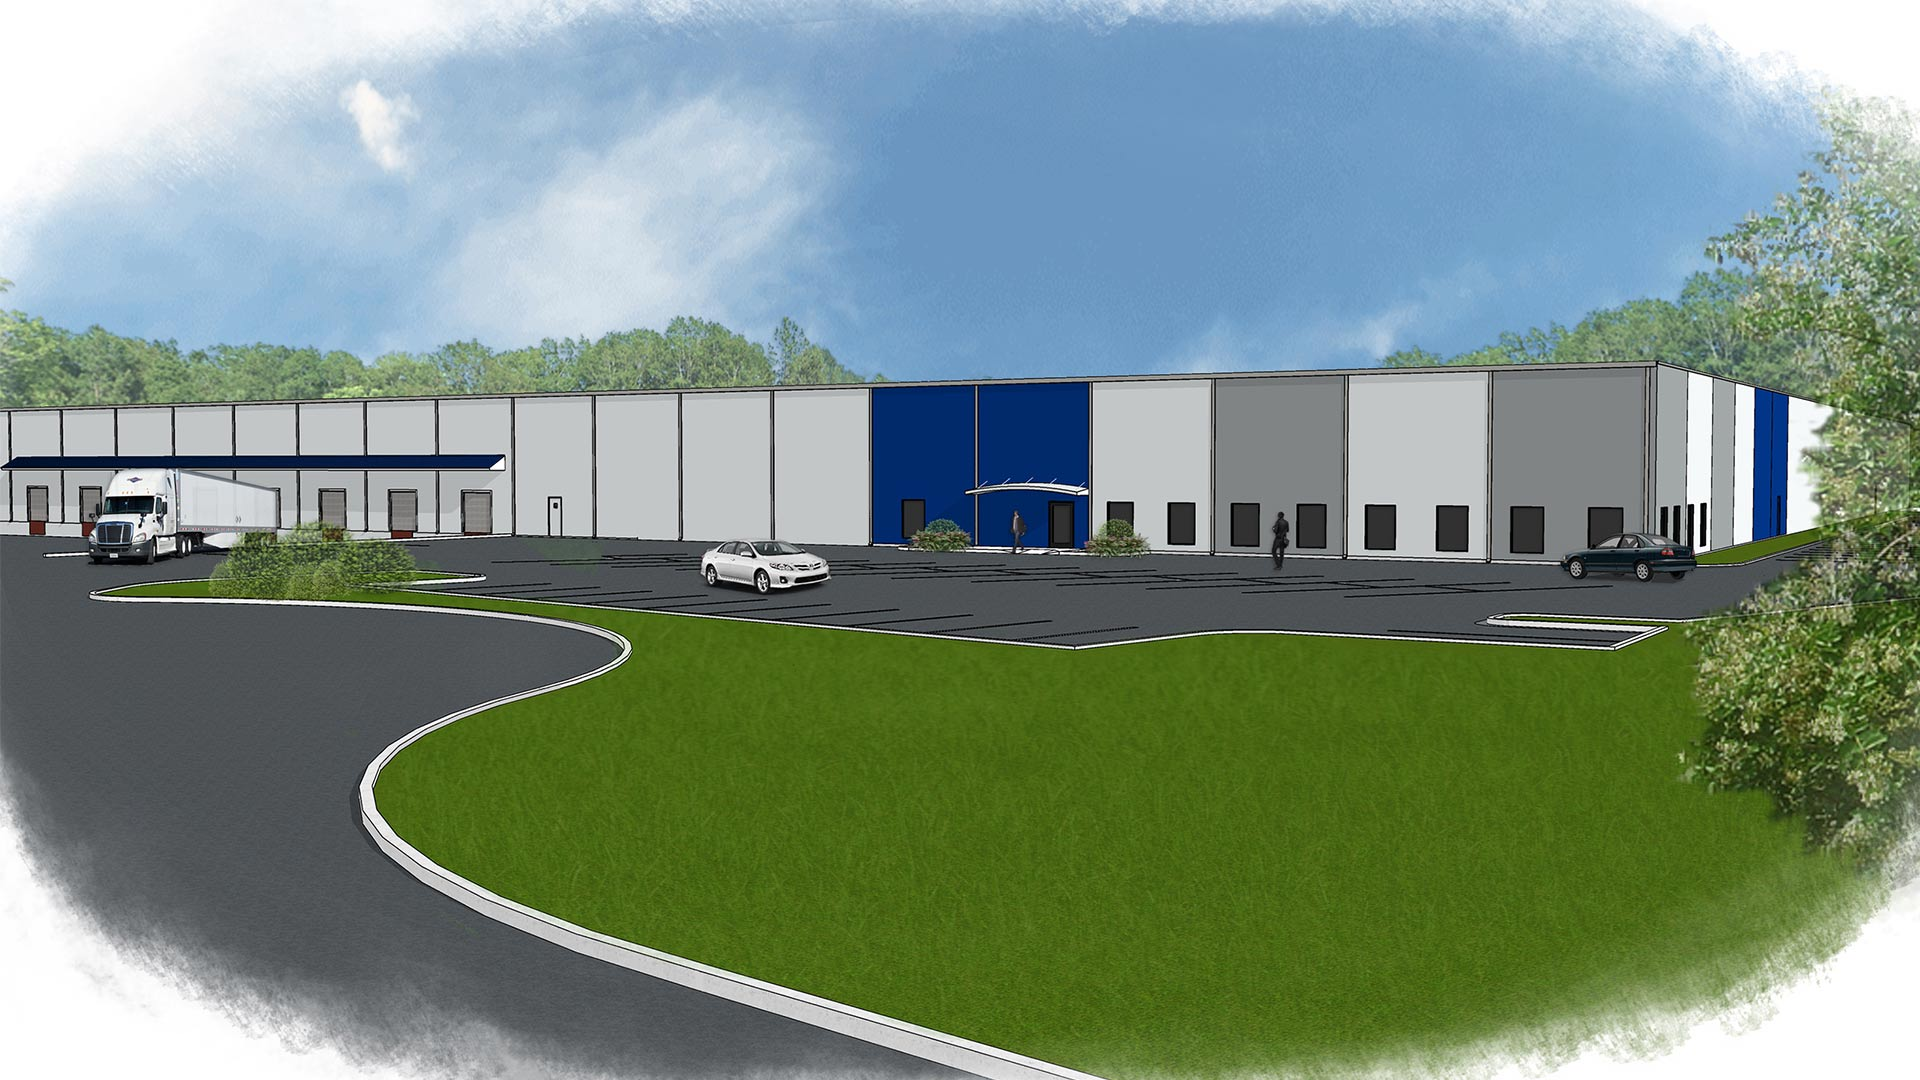 New 315,000 sq ft warehouse and distribution center coming to Norfolk in March 2020